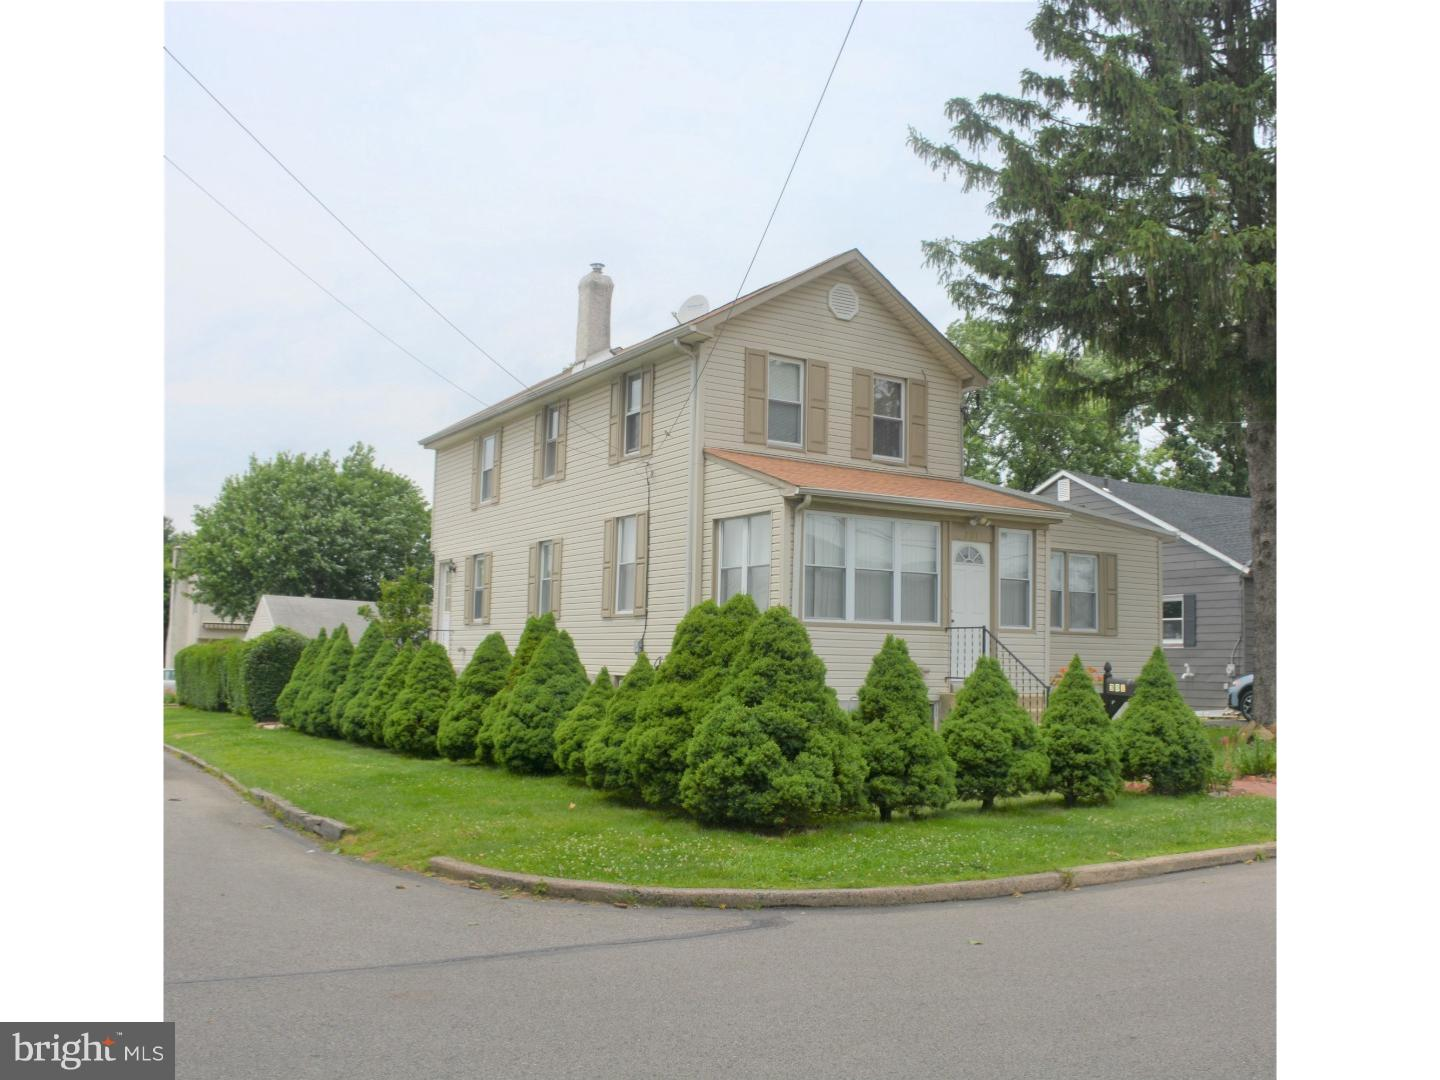 301 6TH AVENUE, FOLSOM, PA 19033